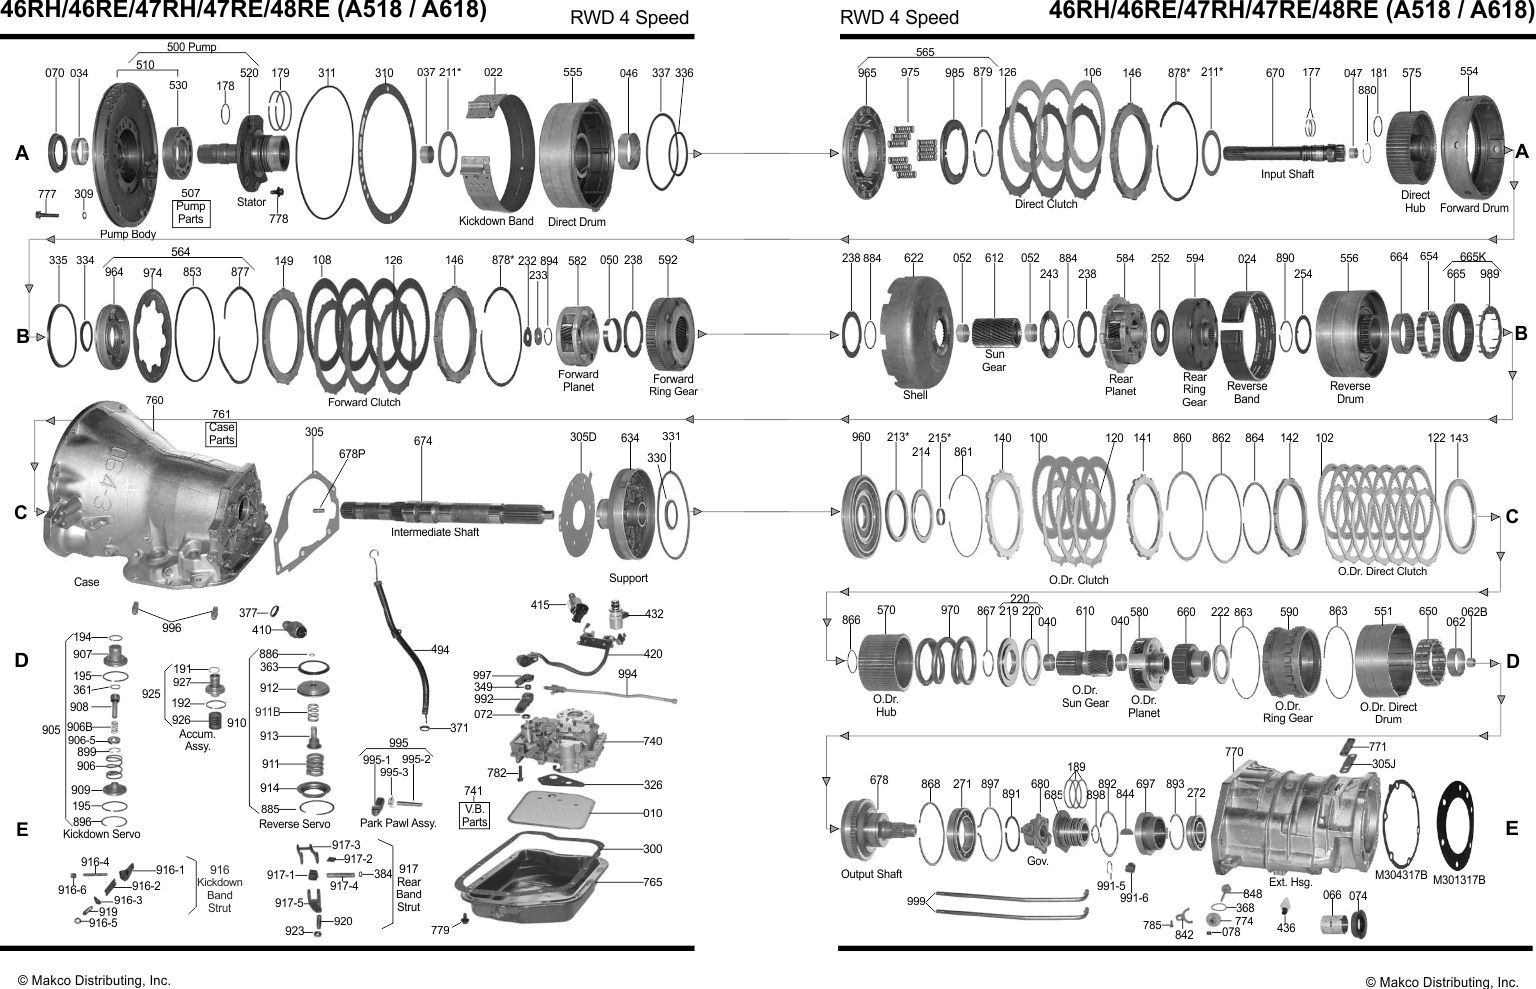 Od Re Transmission Wiring Diagram on dodge 48re transmission diagram, dodge 44re transmission diagram, dodge 518 transmission diagram, dodge a500 transmission diagram, 47re blow up diagram, 47re wiring diagram for dodge, 47rh lockup wiring diagram, dodge ram 2500 transmission diagram, dodge ram 1500 transmission diagram, 4r100 transmission diagram, dodge 727 transmission diagram, 2012 dodge ram trailer harness diagram, 47re parts diagram, 700r transmission diagram, automatic transmission parts diagram,